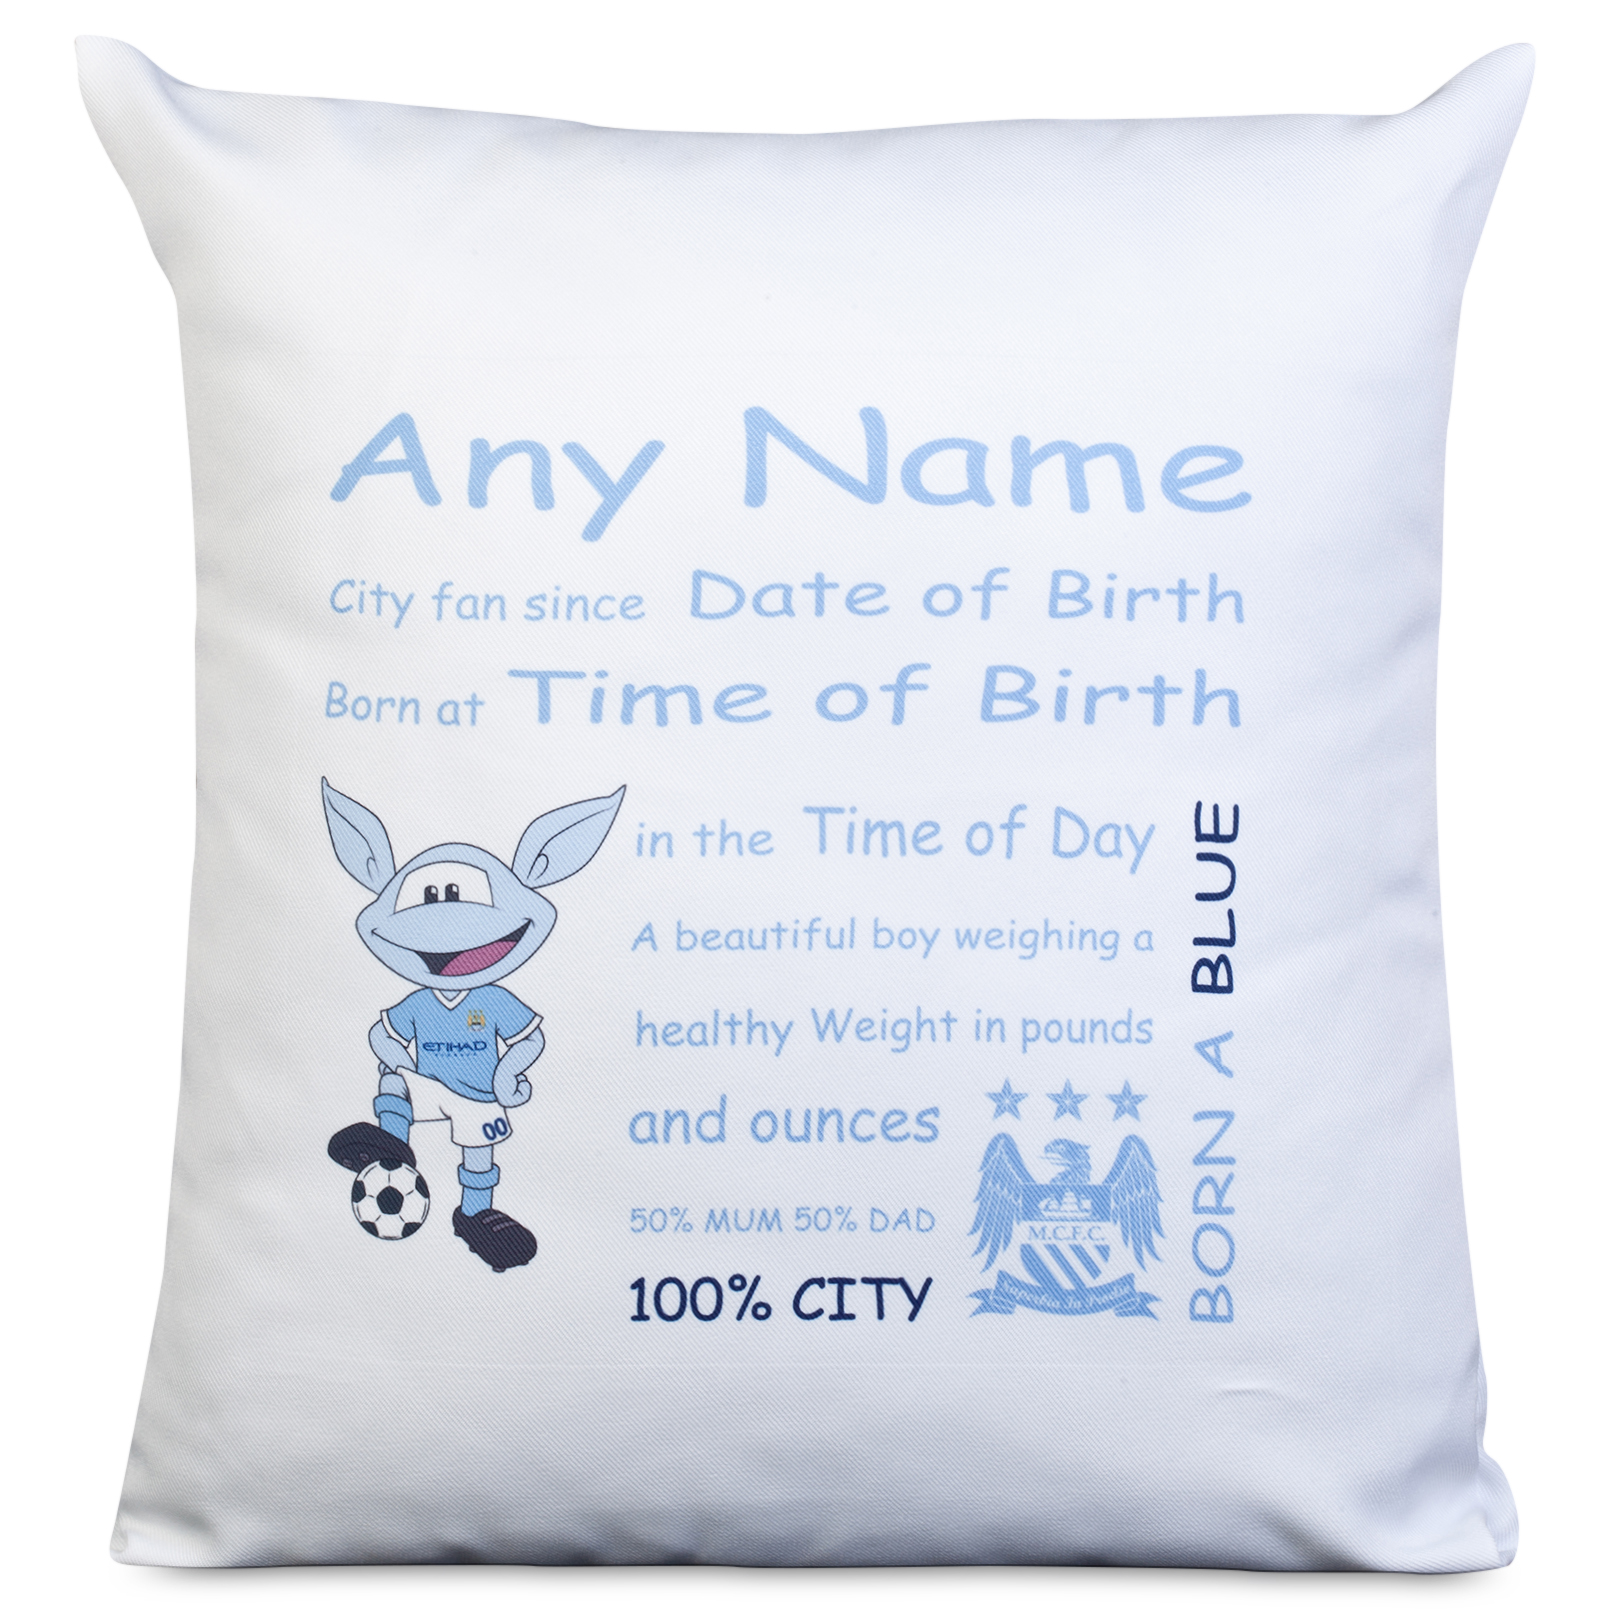 Manchester City Personalised Moonchester City Fan Since Cushion with Padding 400 X 400 mm